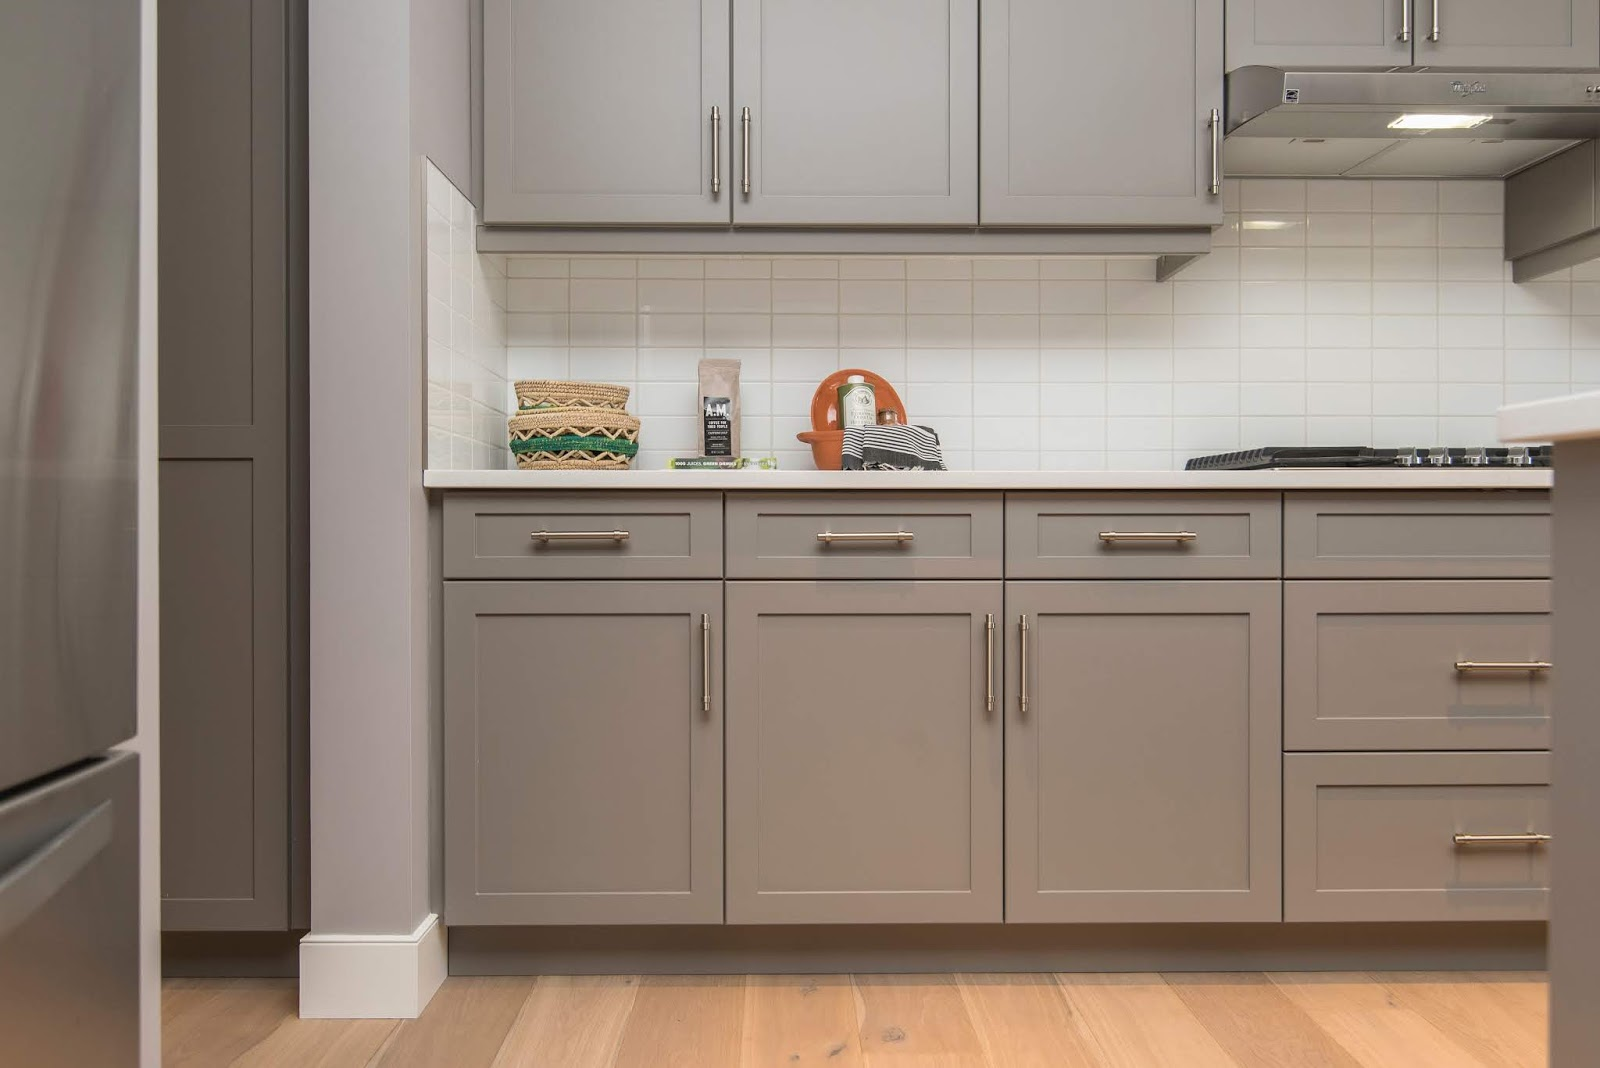 - Clé: How To Choose The Right Subway Tile Backsplash For Your Kitchen